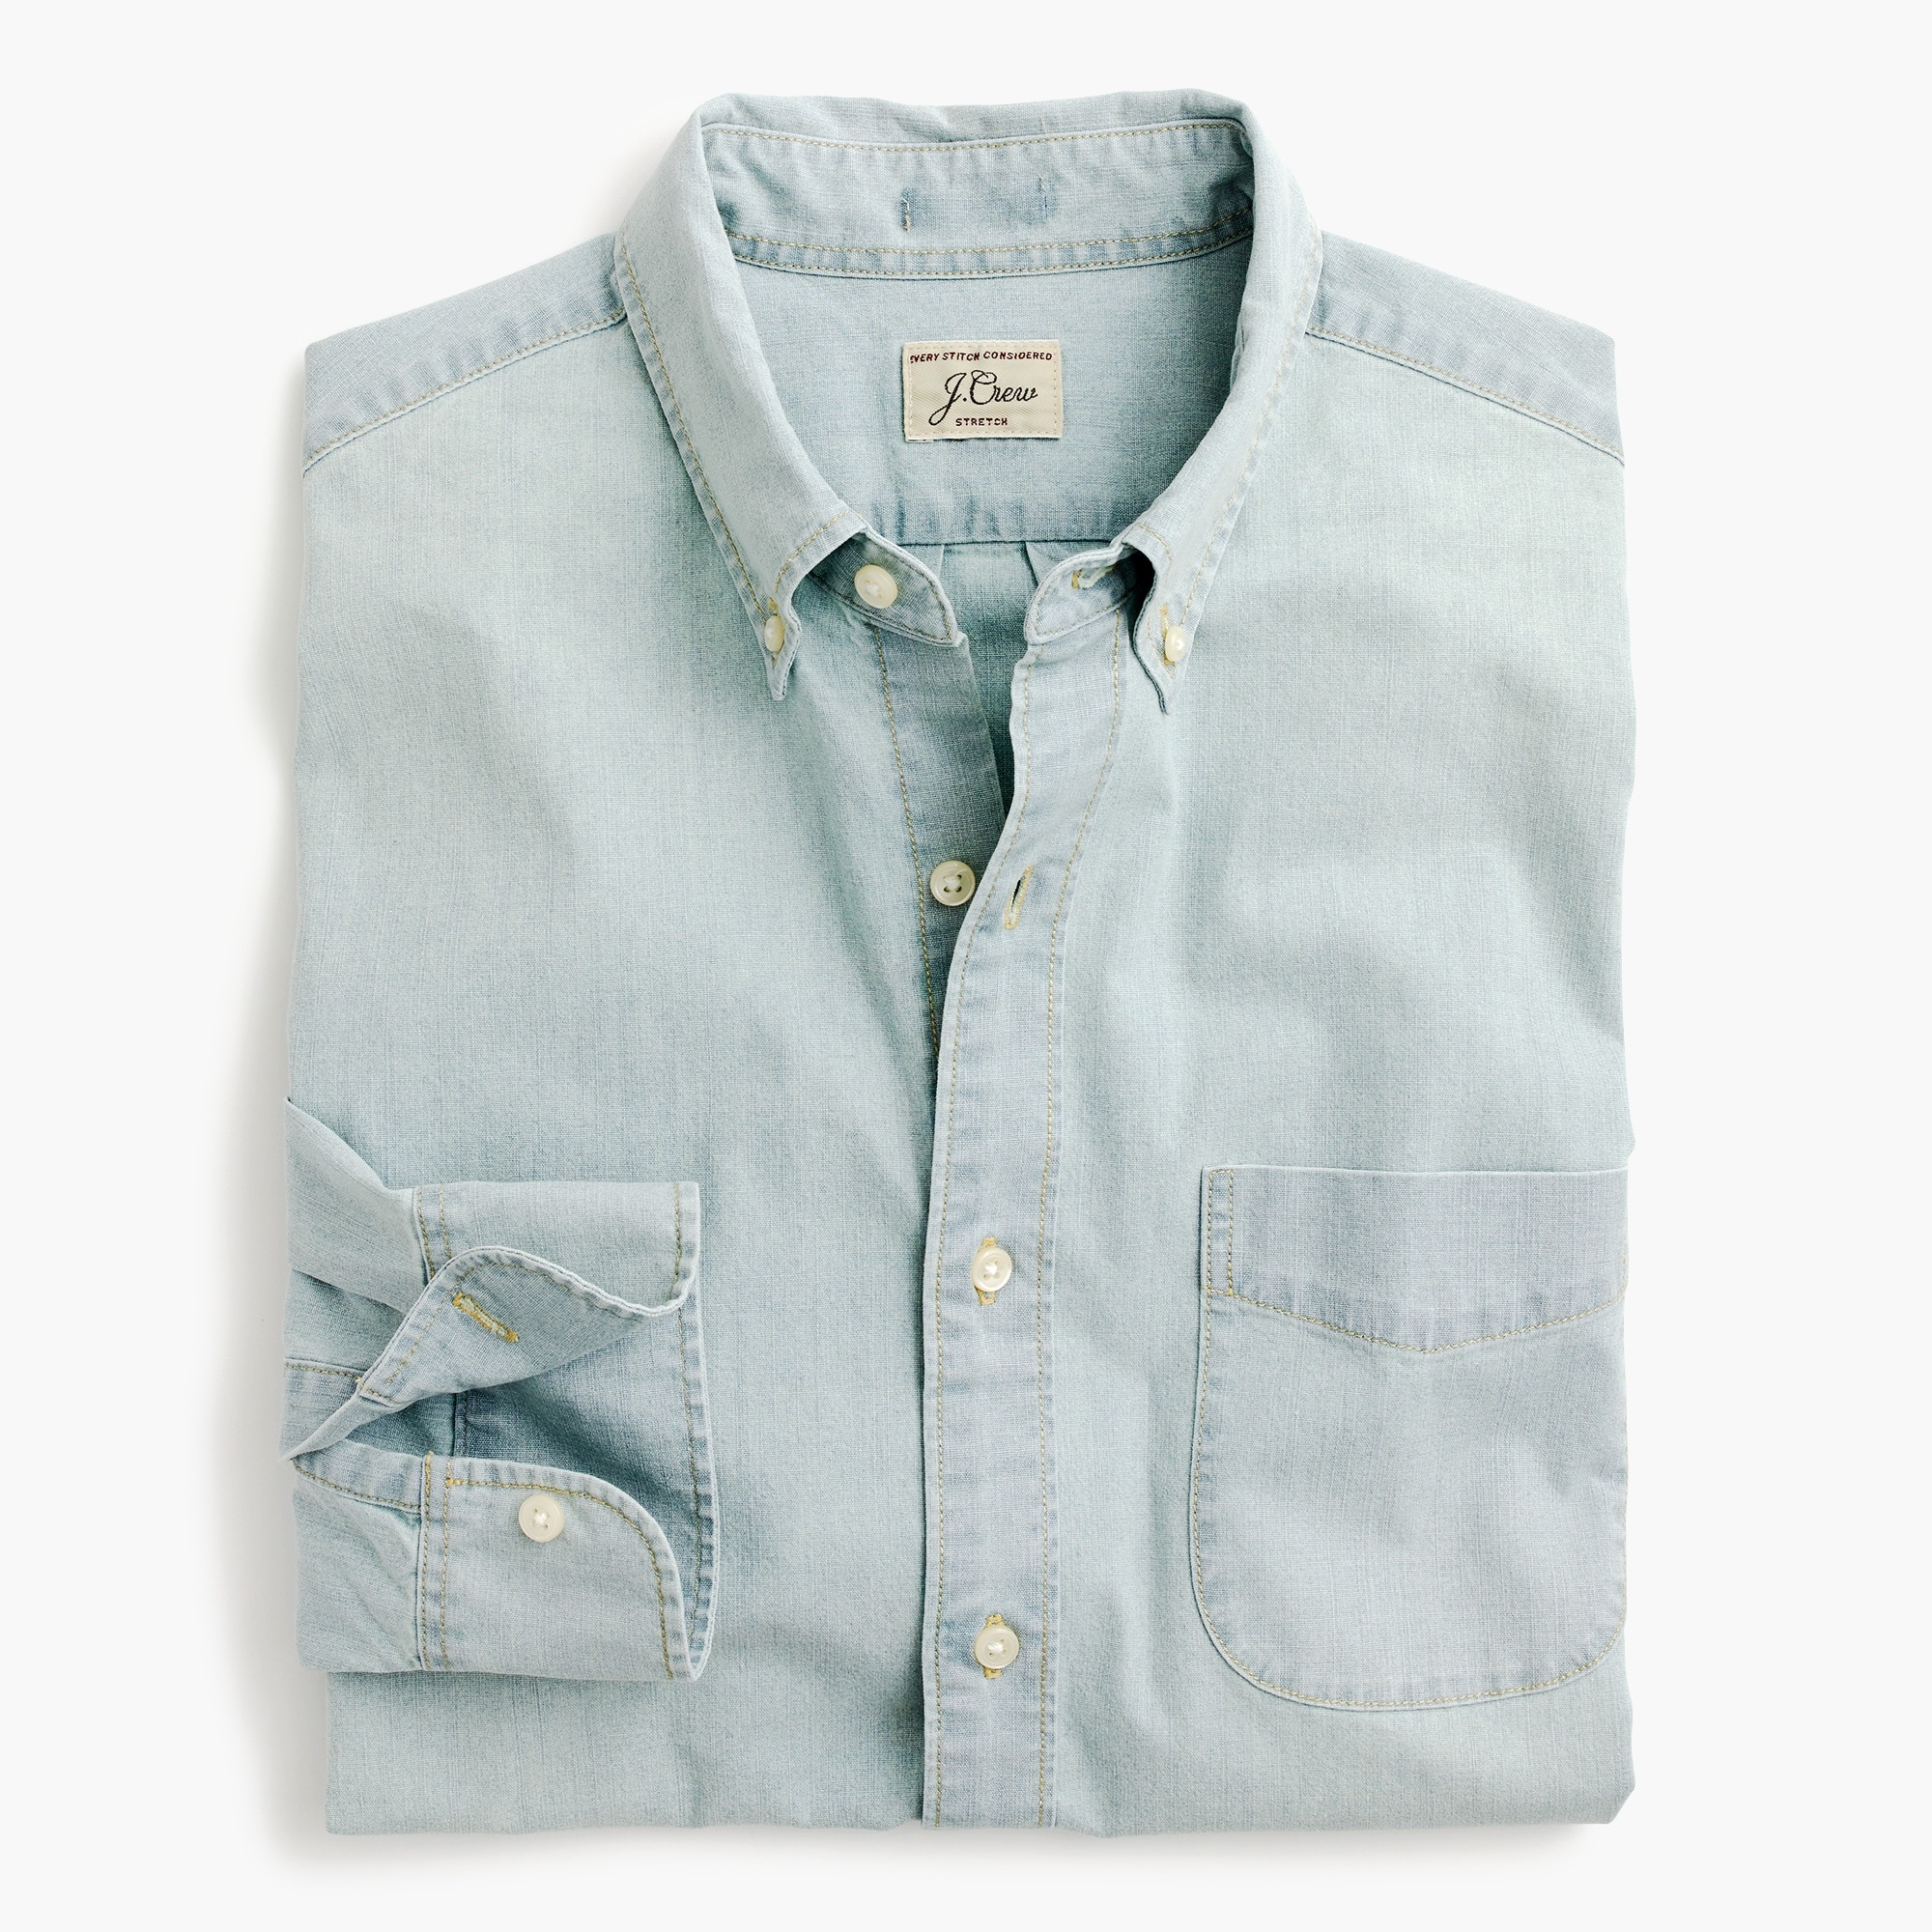 mens Light wash stretch chambray shirt